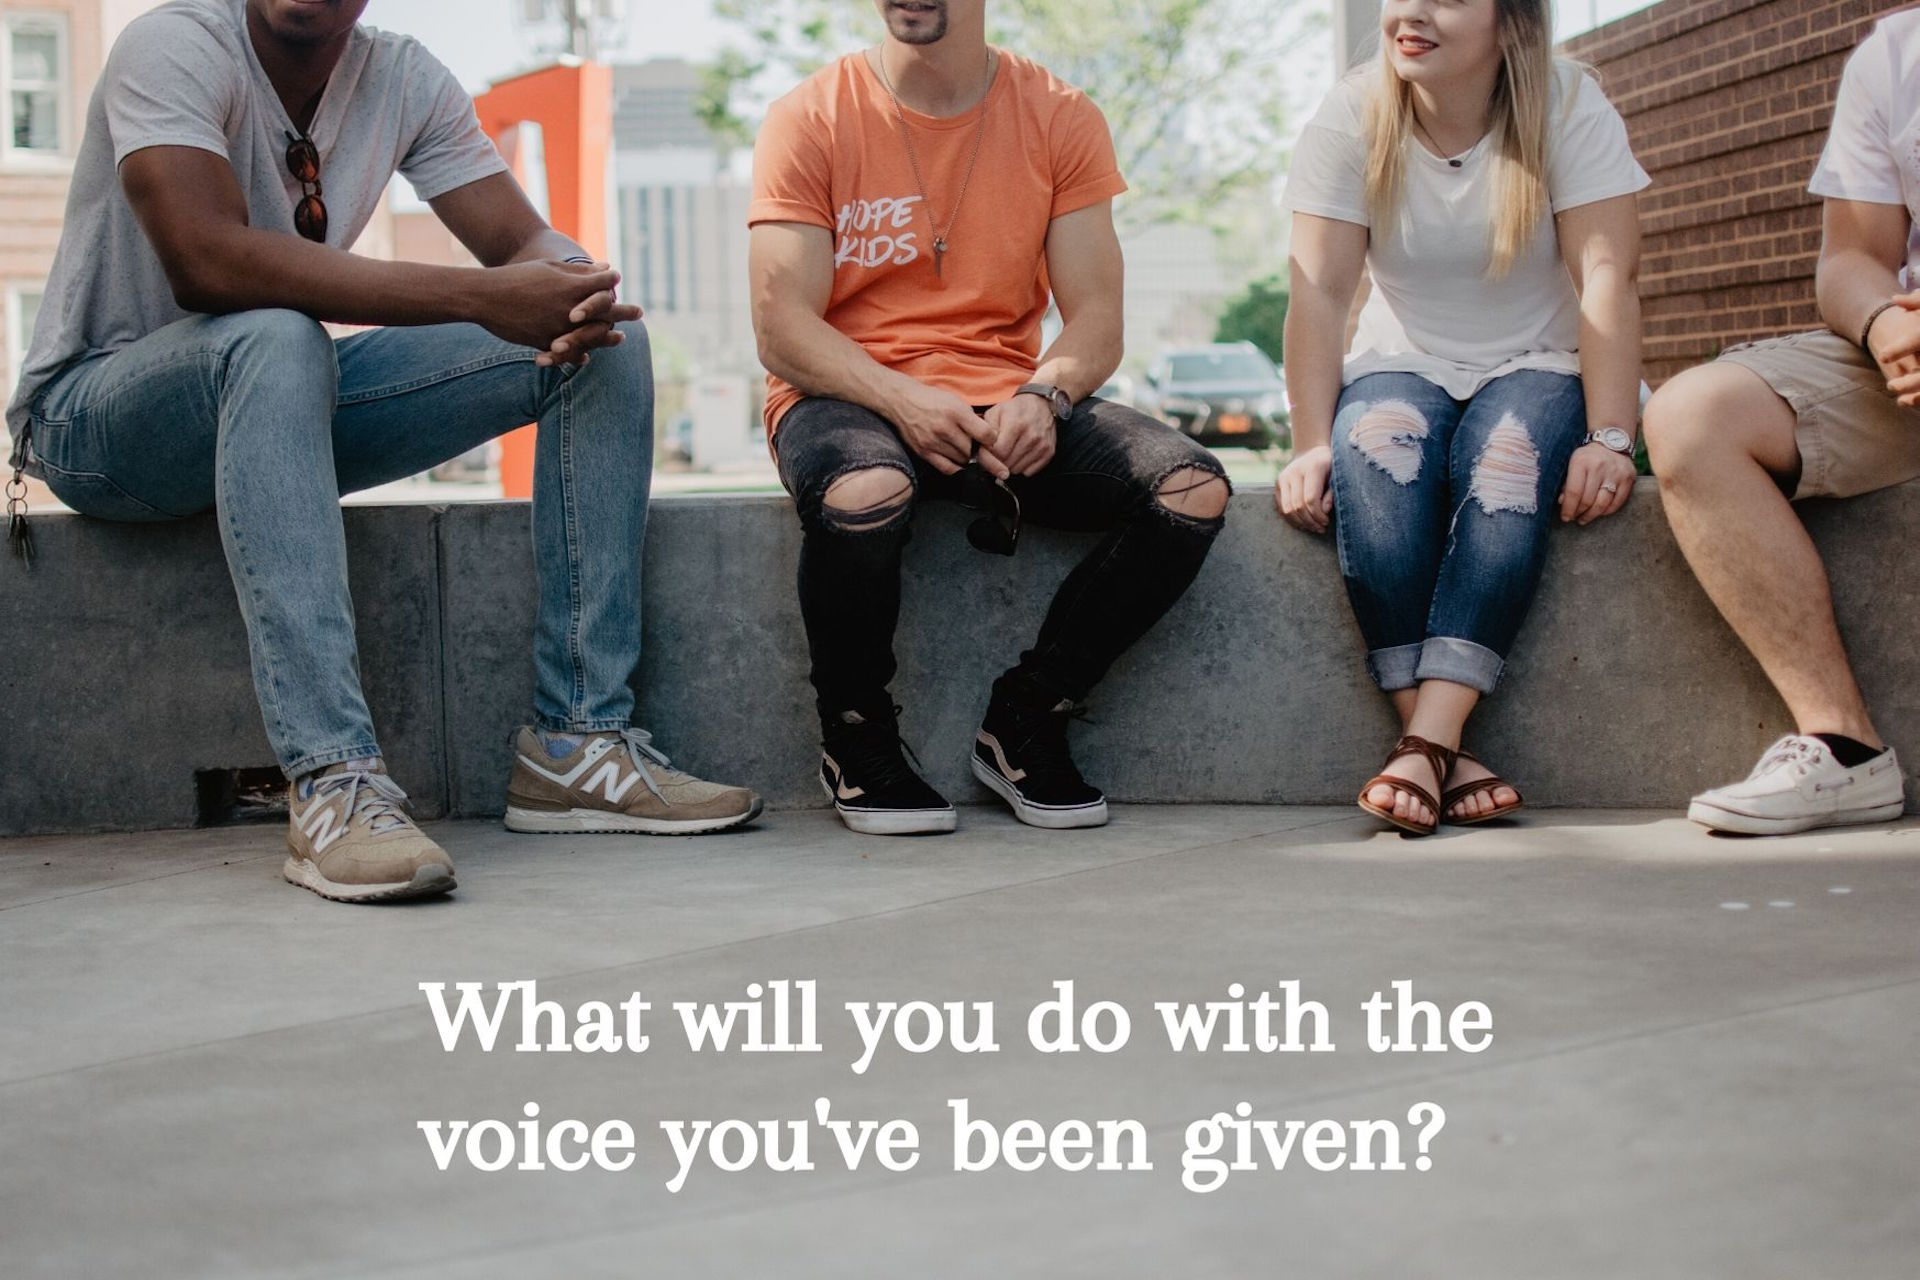 What will you do with the voice you've been given?